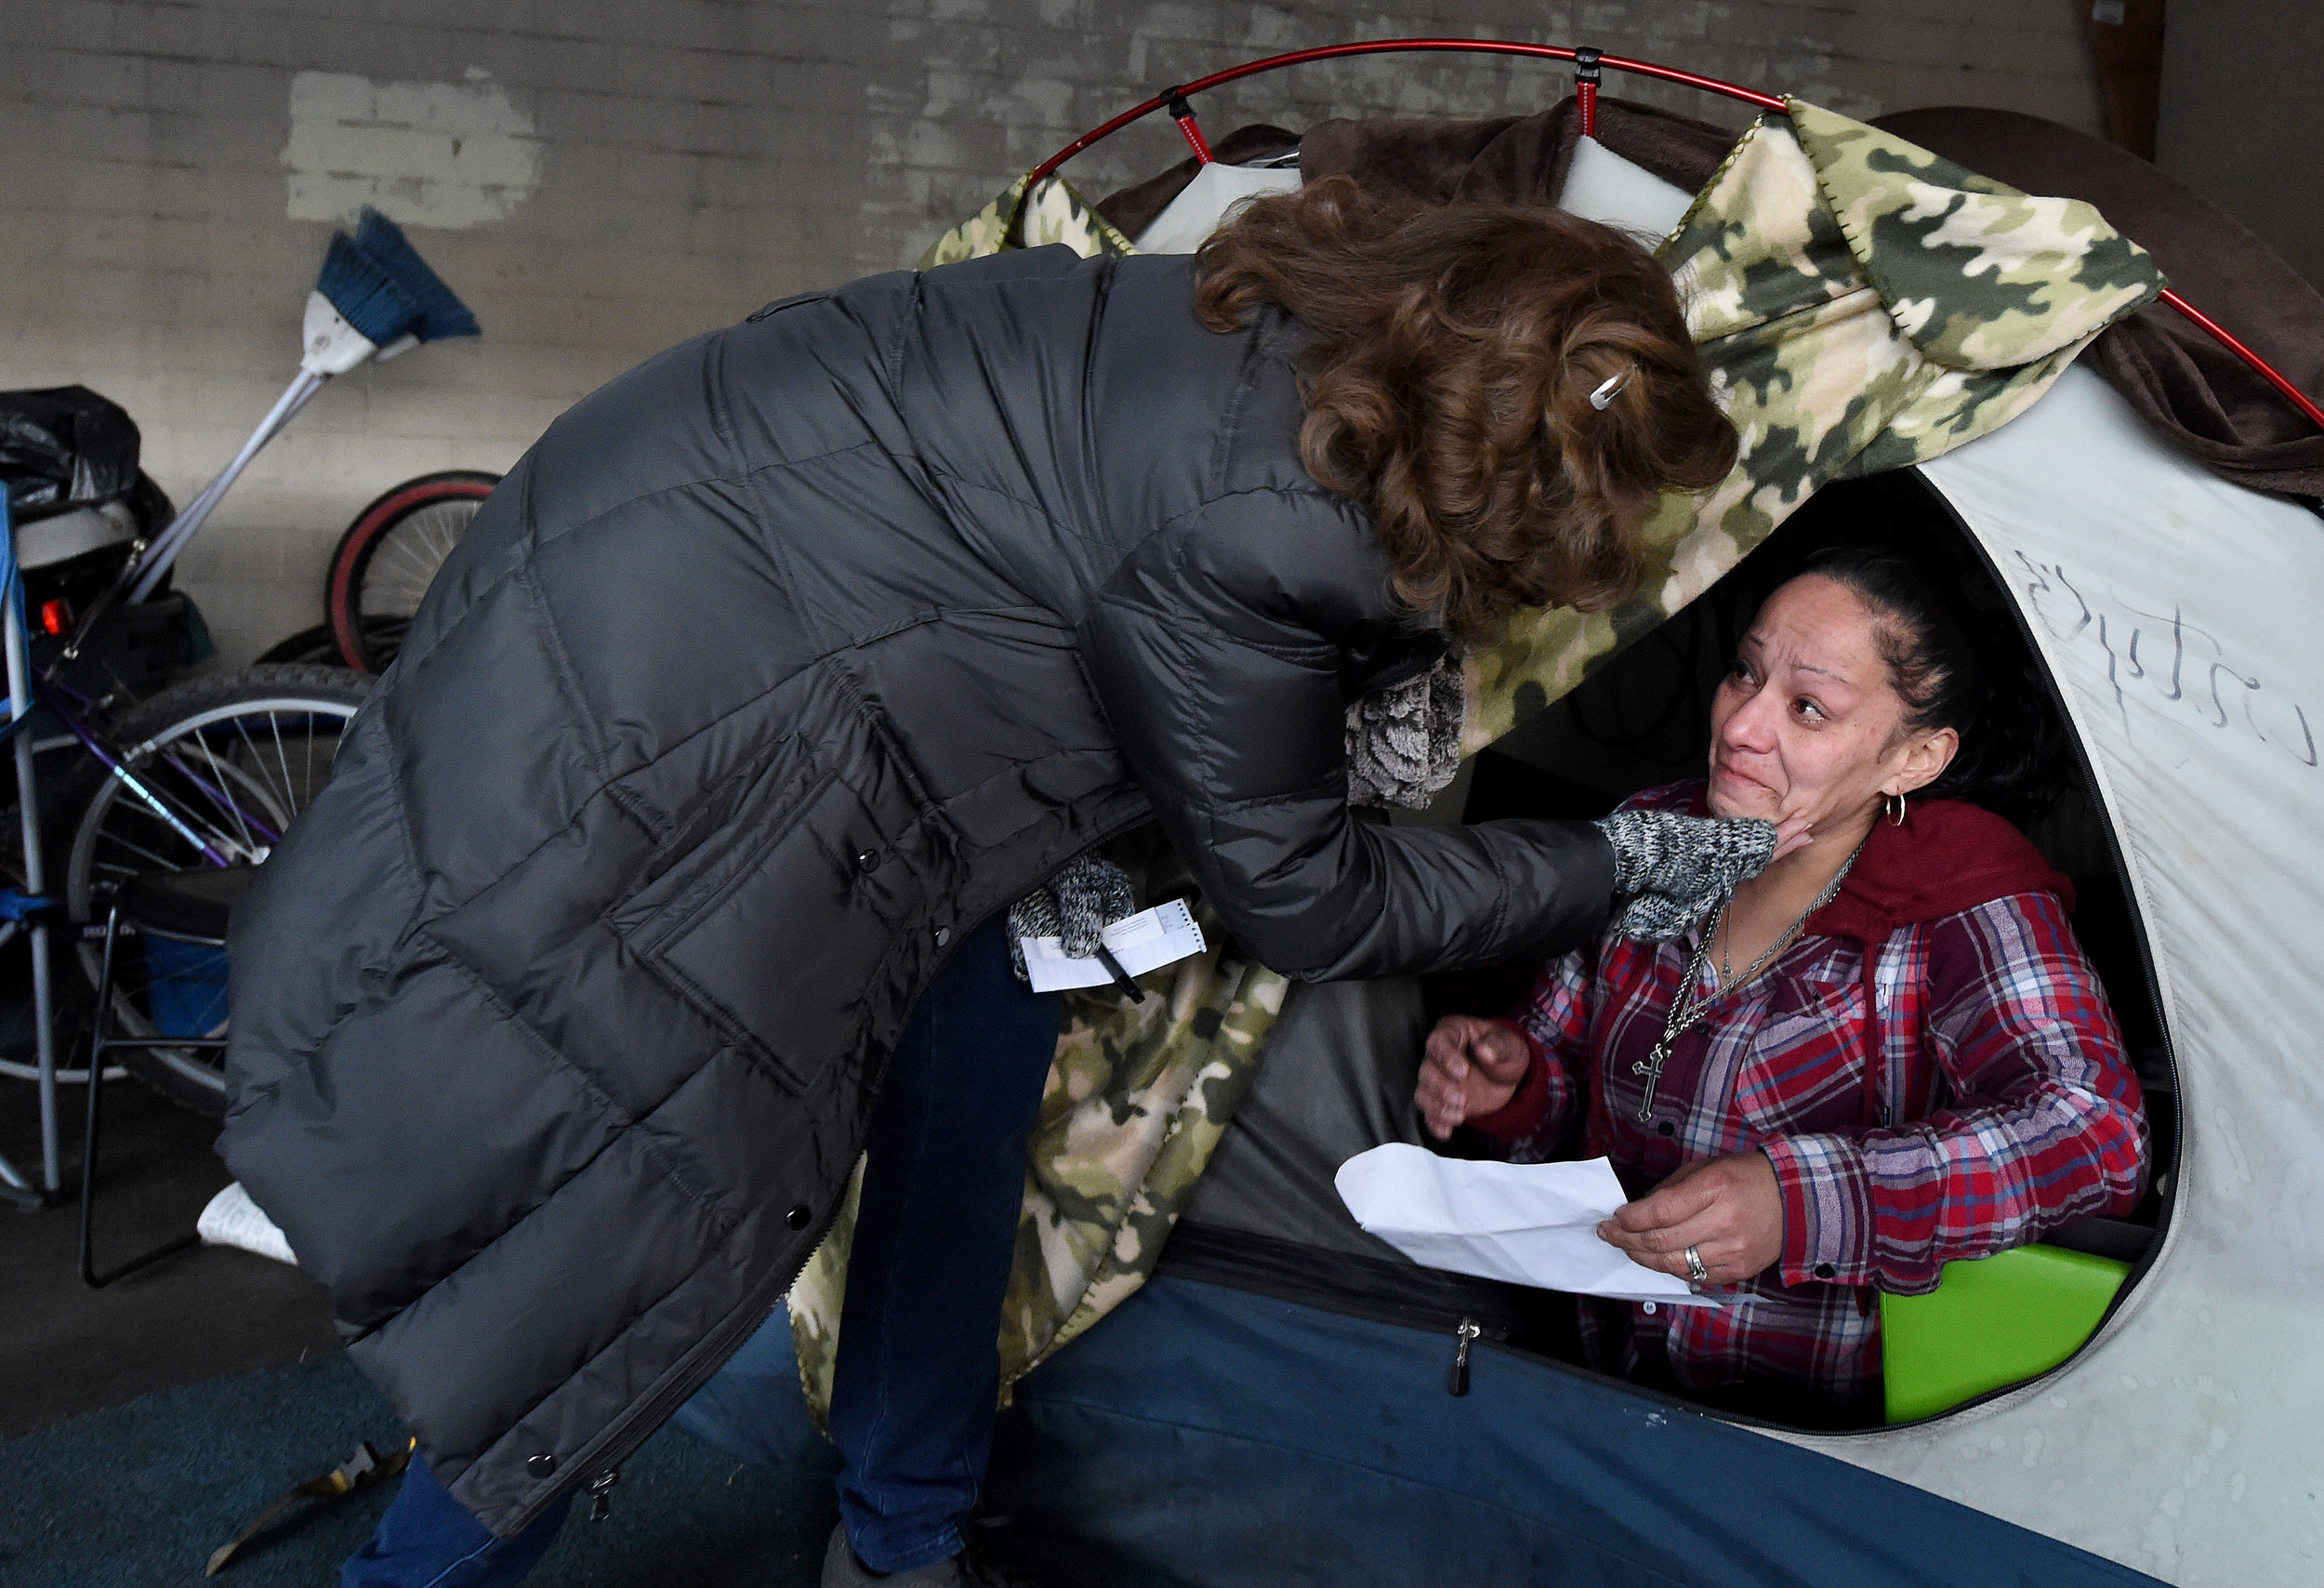 San Bernardino County 5th District Supervisor Josie Gonzales (left) gives a caring touch to Sylvia, 38 from Pasadena and homeless for the past 3 years, under a building during the San Bernardino County 2019 Point-in-Time Homeless Count in downtown San Bernardino Thursday morning, January 24, 2019. The Point-in-Time Homeless Count (PITC) is a one-day street-based and service-based count and subpopulation survey of sheltered and unsheltered individuals to identify how many people in San Bernardino County are homeless and their subpopulation characteristics on a given day. Information was also given out to help those who wished to improve their situation.